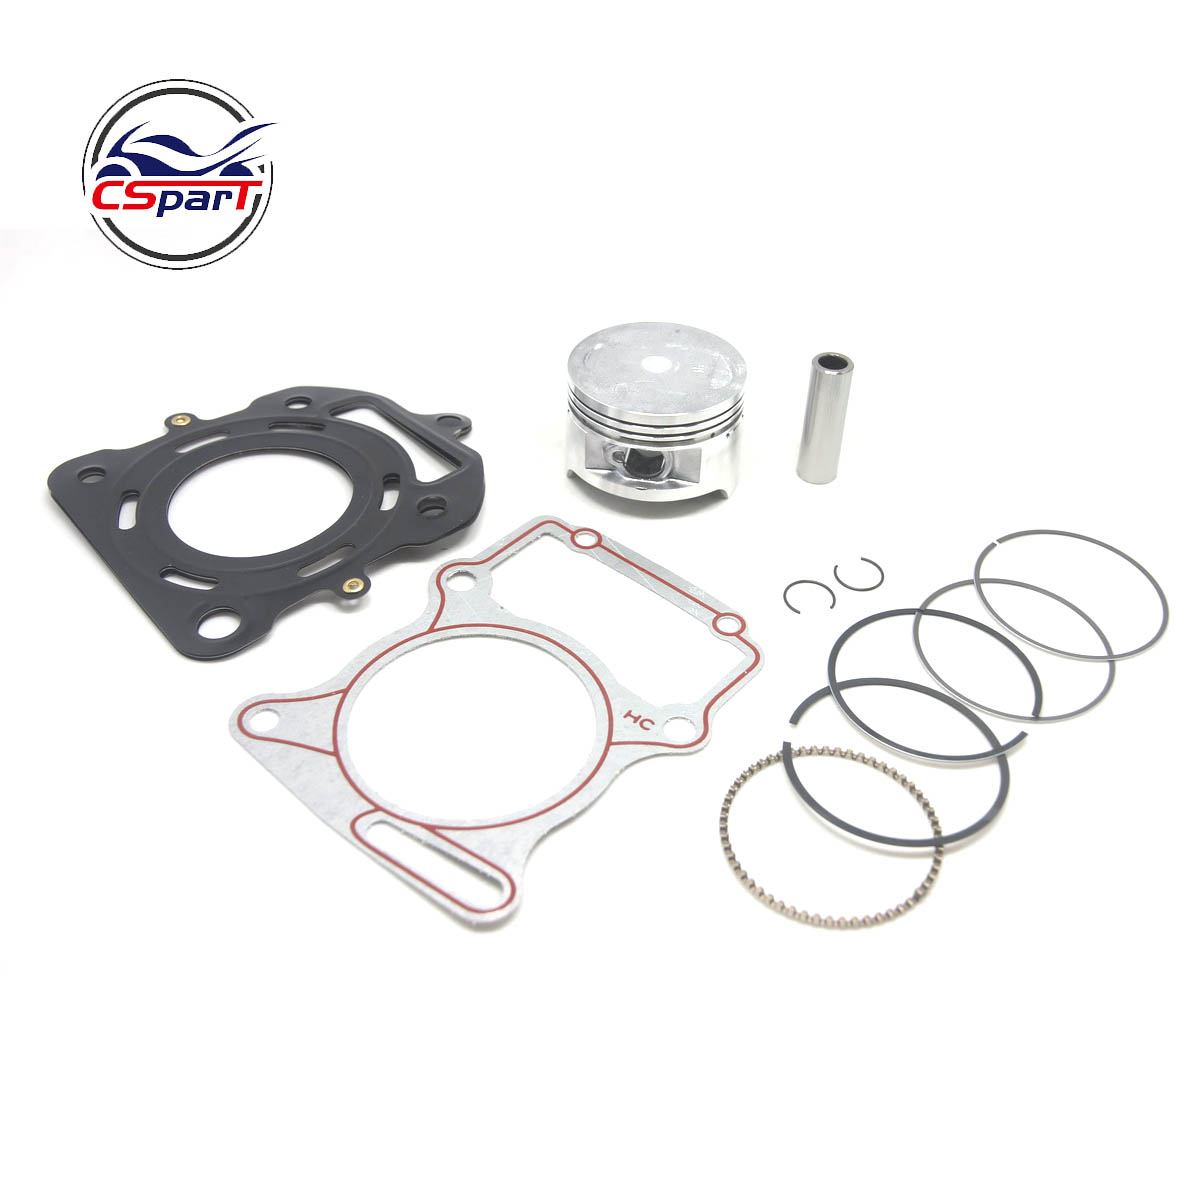 REPLACEMENT WHITE PLASTIC FENDER FAIRINGS KIT COMPATIBLE WITH HONDA CRF50 XR50 CRF XR 50 AND THEIR CLONES R NEWANIME